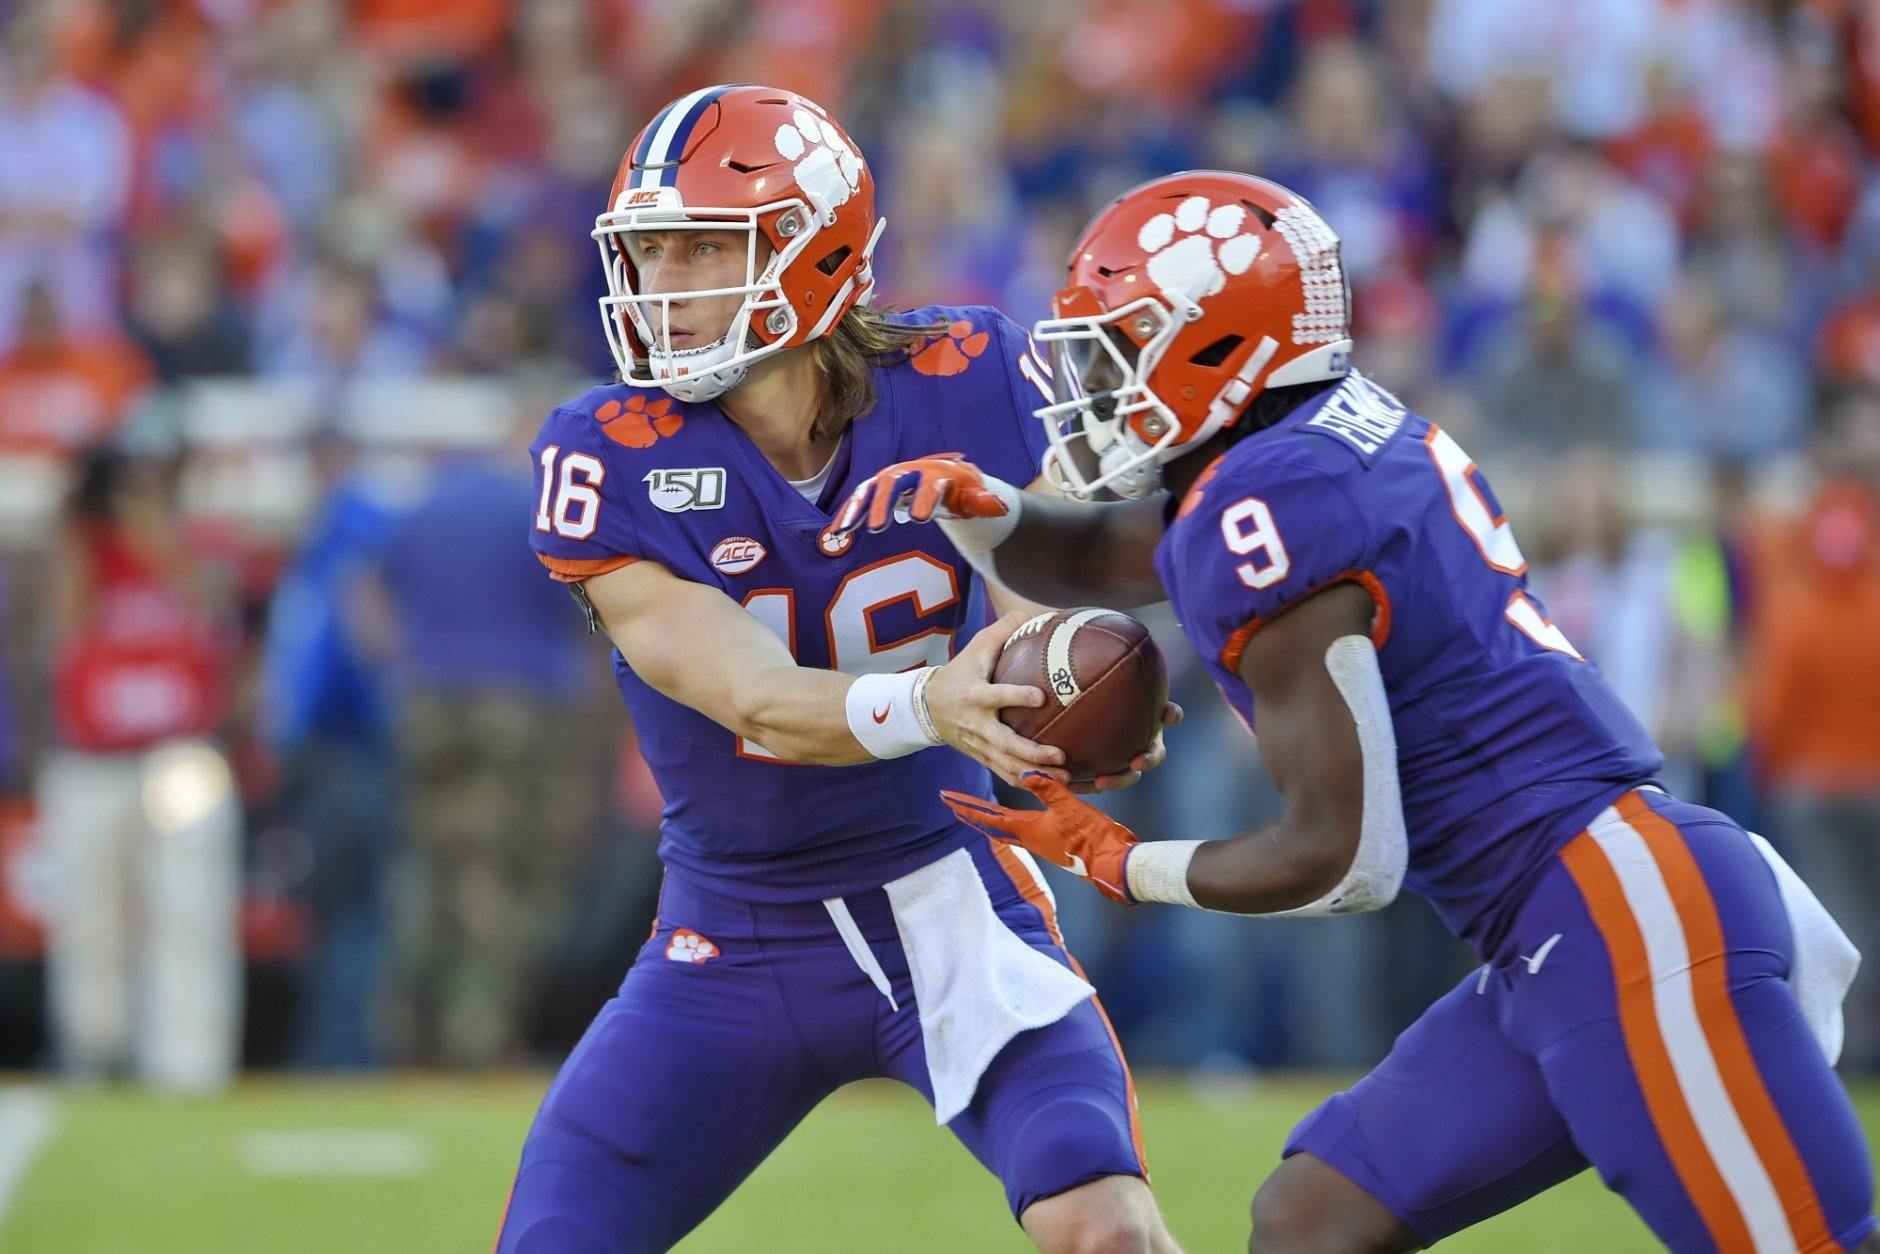 <p><strong>No. 5 Clemson (9-0):</strong> Beat Wake Forest, win ACC title</p> <p>Who would have guessed that the Clemson-Wake Forest game might determine the playoff fate of the ACC? With no viable playoff challenger in the Coastal, the winner of that game won't have a resume-boosting chance in the title game. Could Clemson get in despite a loss at NC State or South Carolina? Maybe, but their initial positioning makes that seem unlikely, unless they get some serious help.</p>